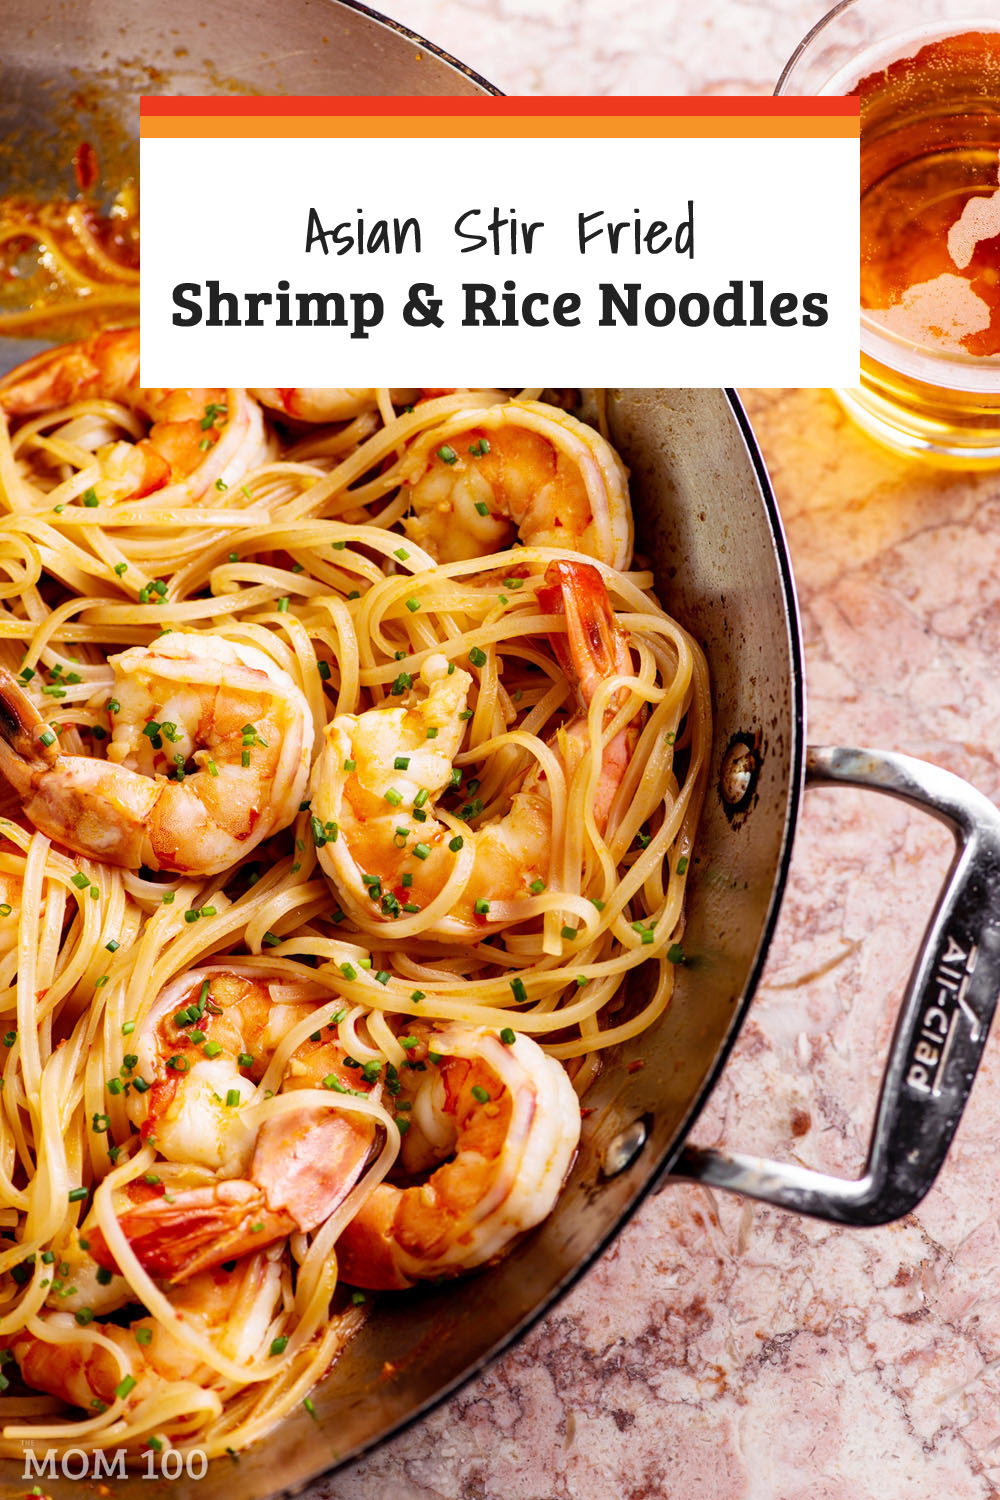 Asian Stir Fried Shrimp and Rice Noodles: In this 20-MINUTE weeknight stir fry, springy rice noodles surround plump shrimp with a nice lacing of Asian flavors.  If you like Pad Thai, this dish is definitely for you!